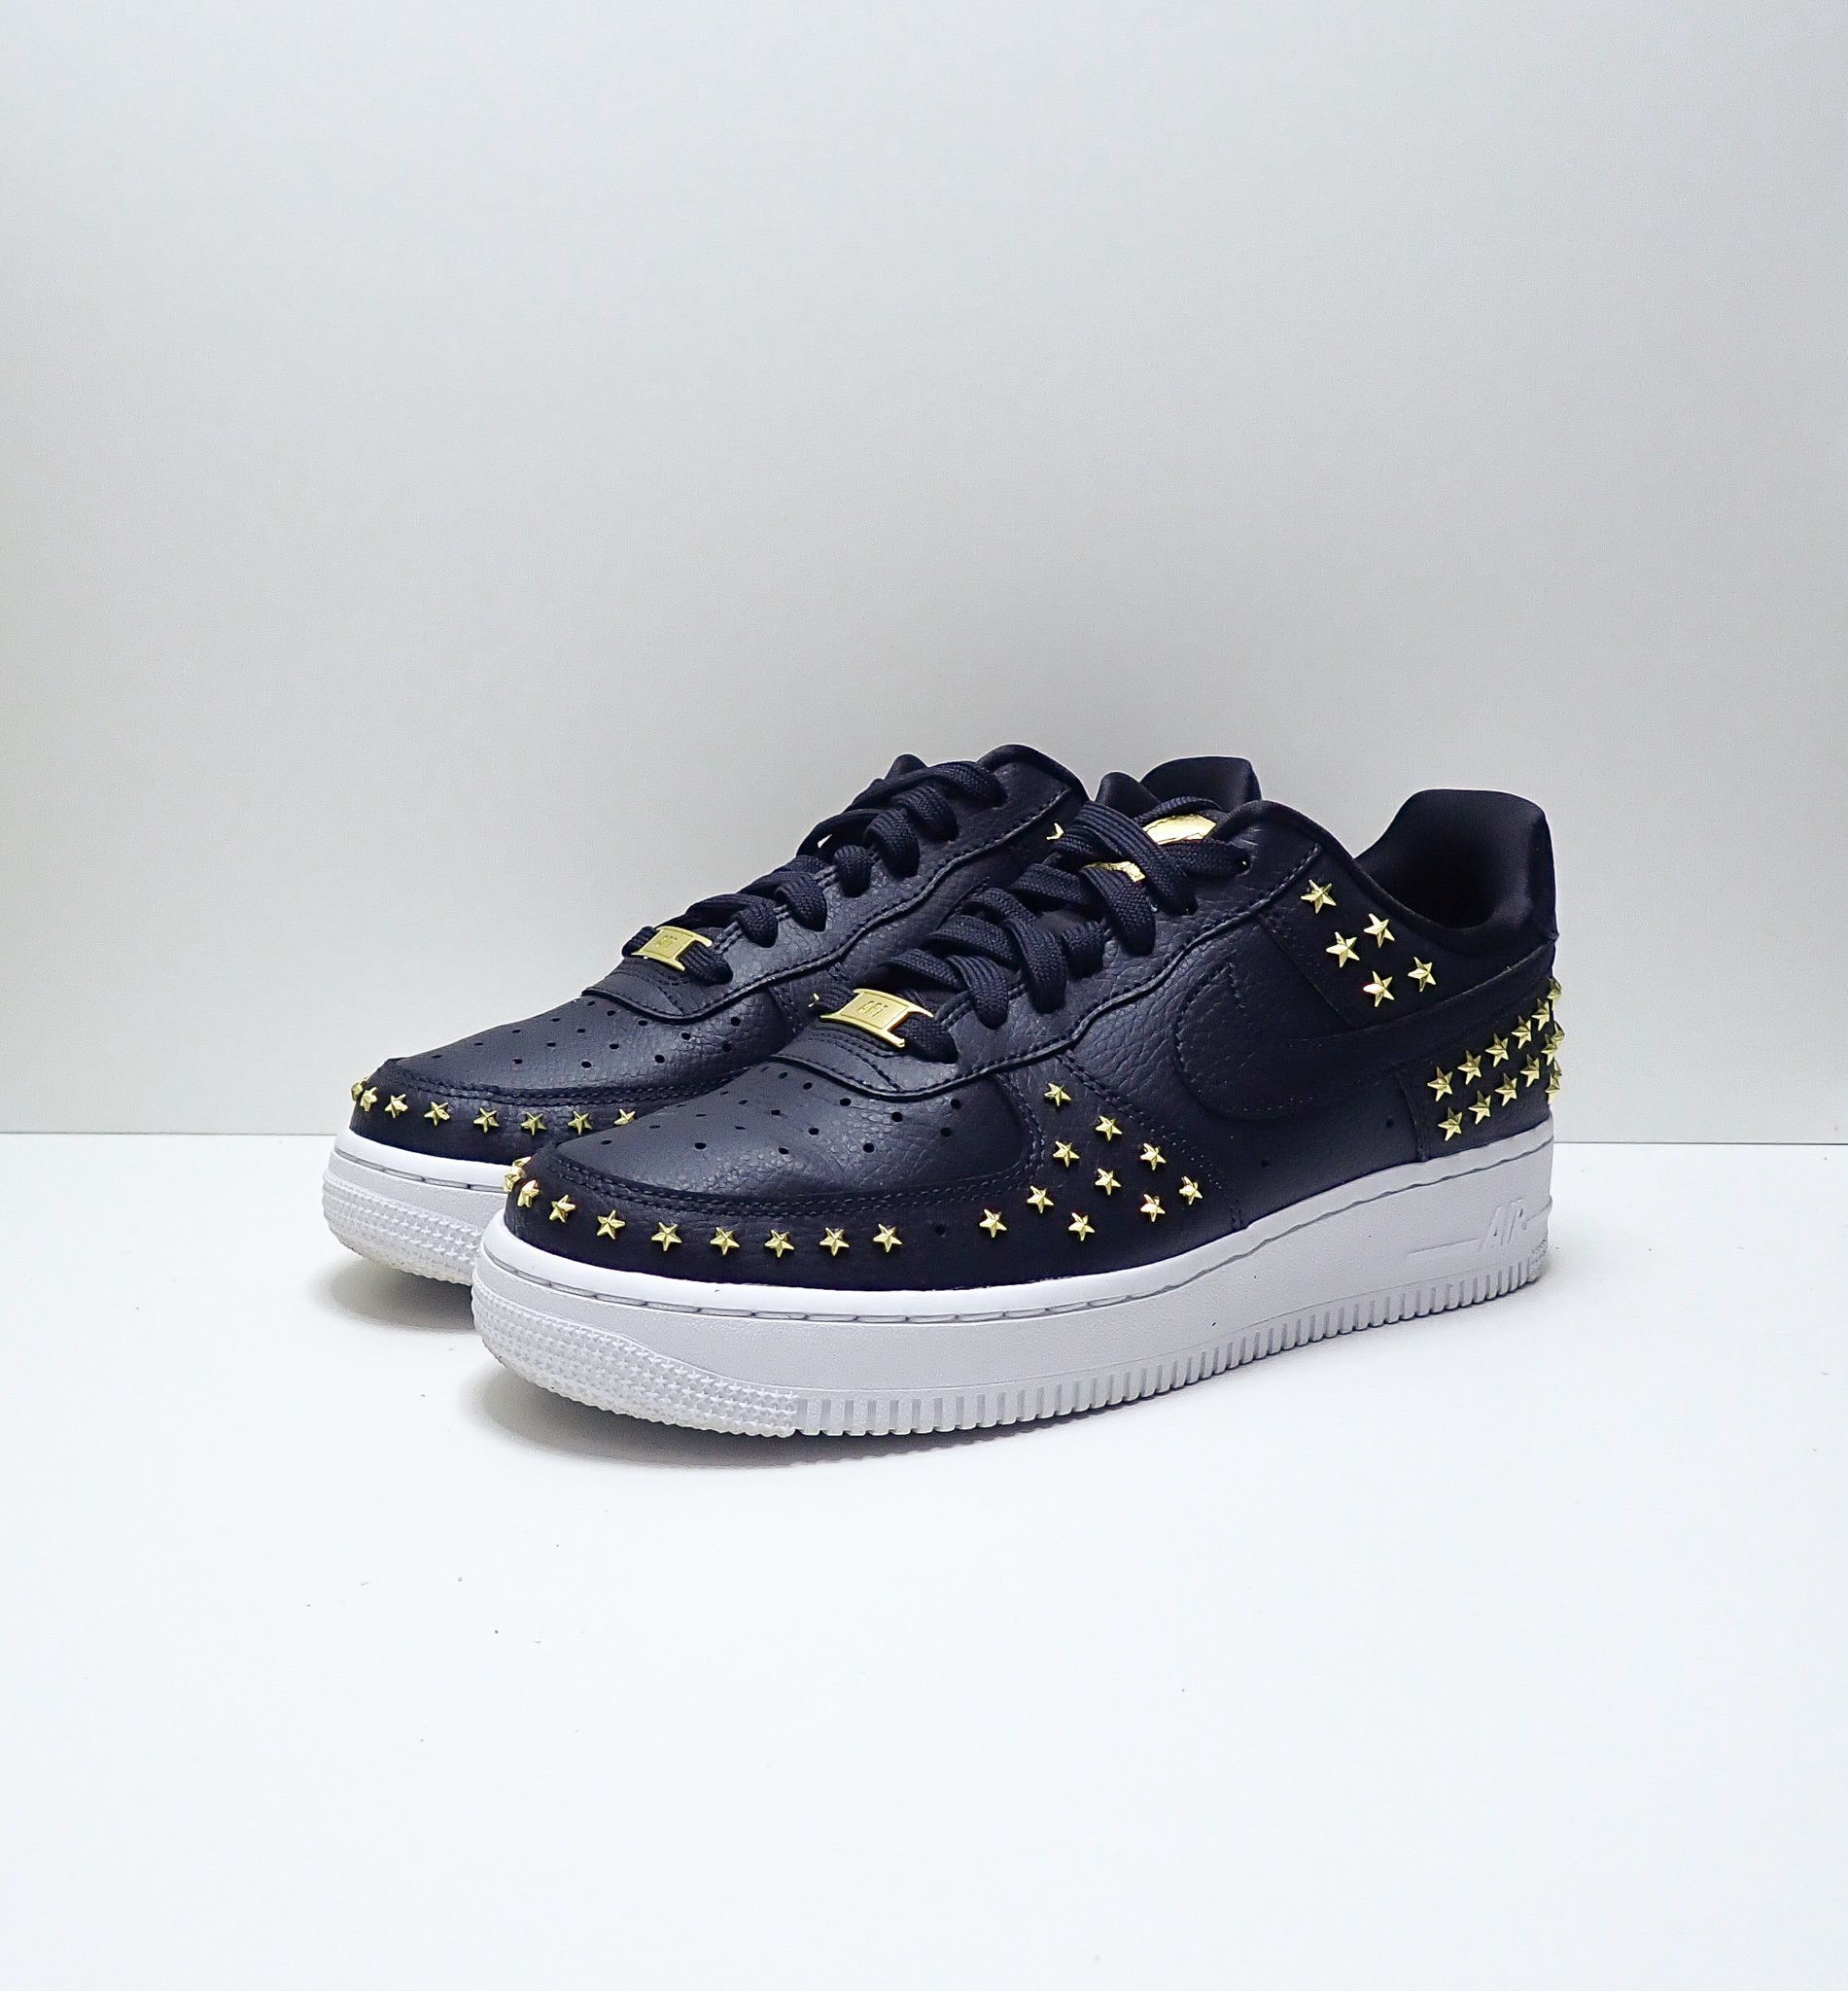 Nike Air Force 1 Low Stars Oil Grey (W)